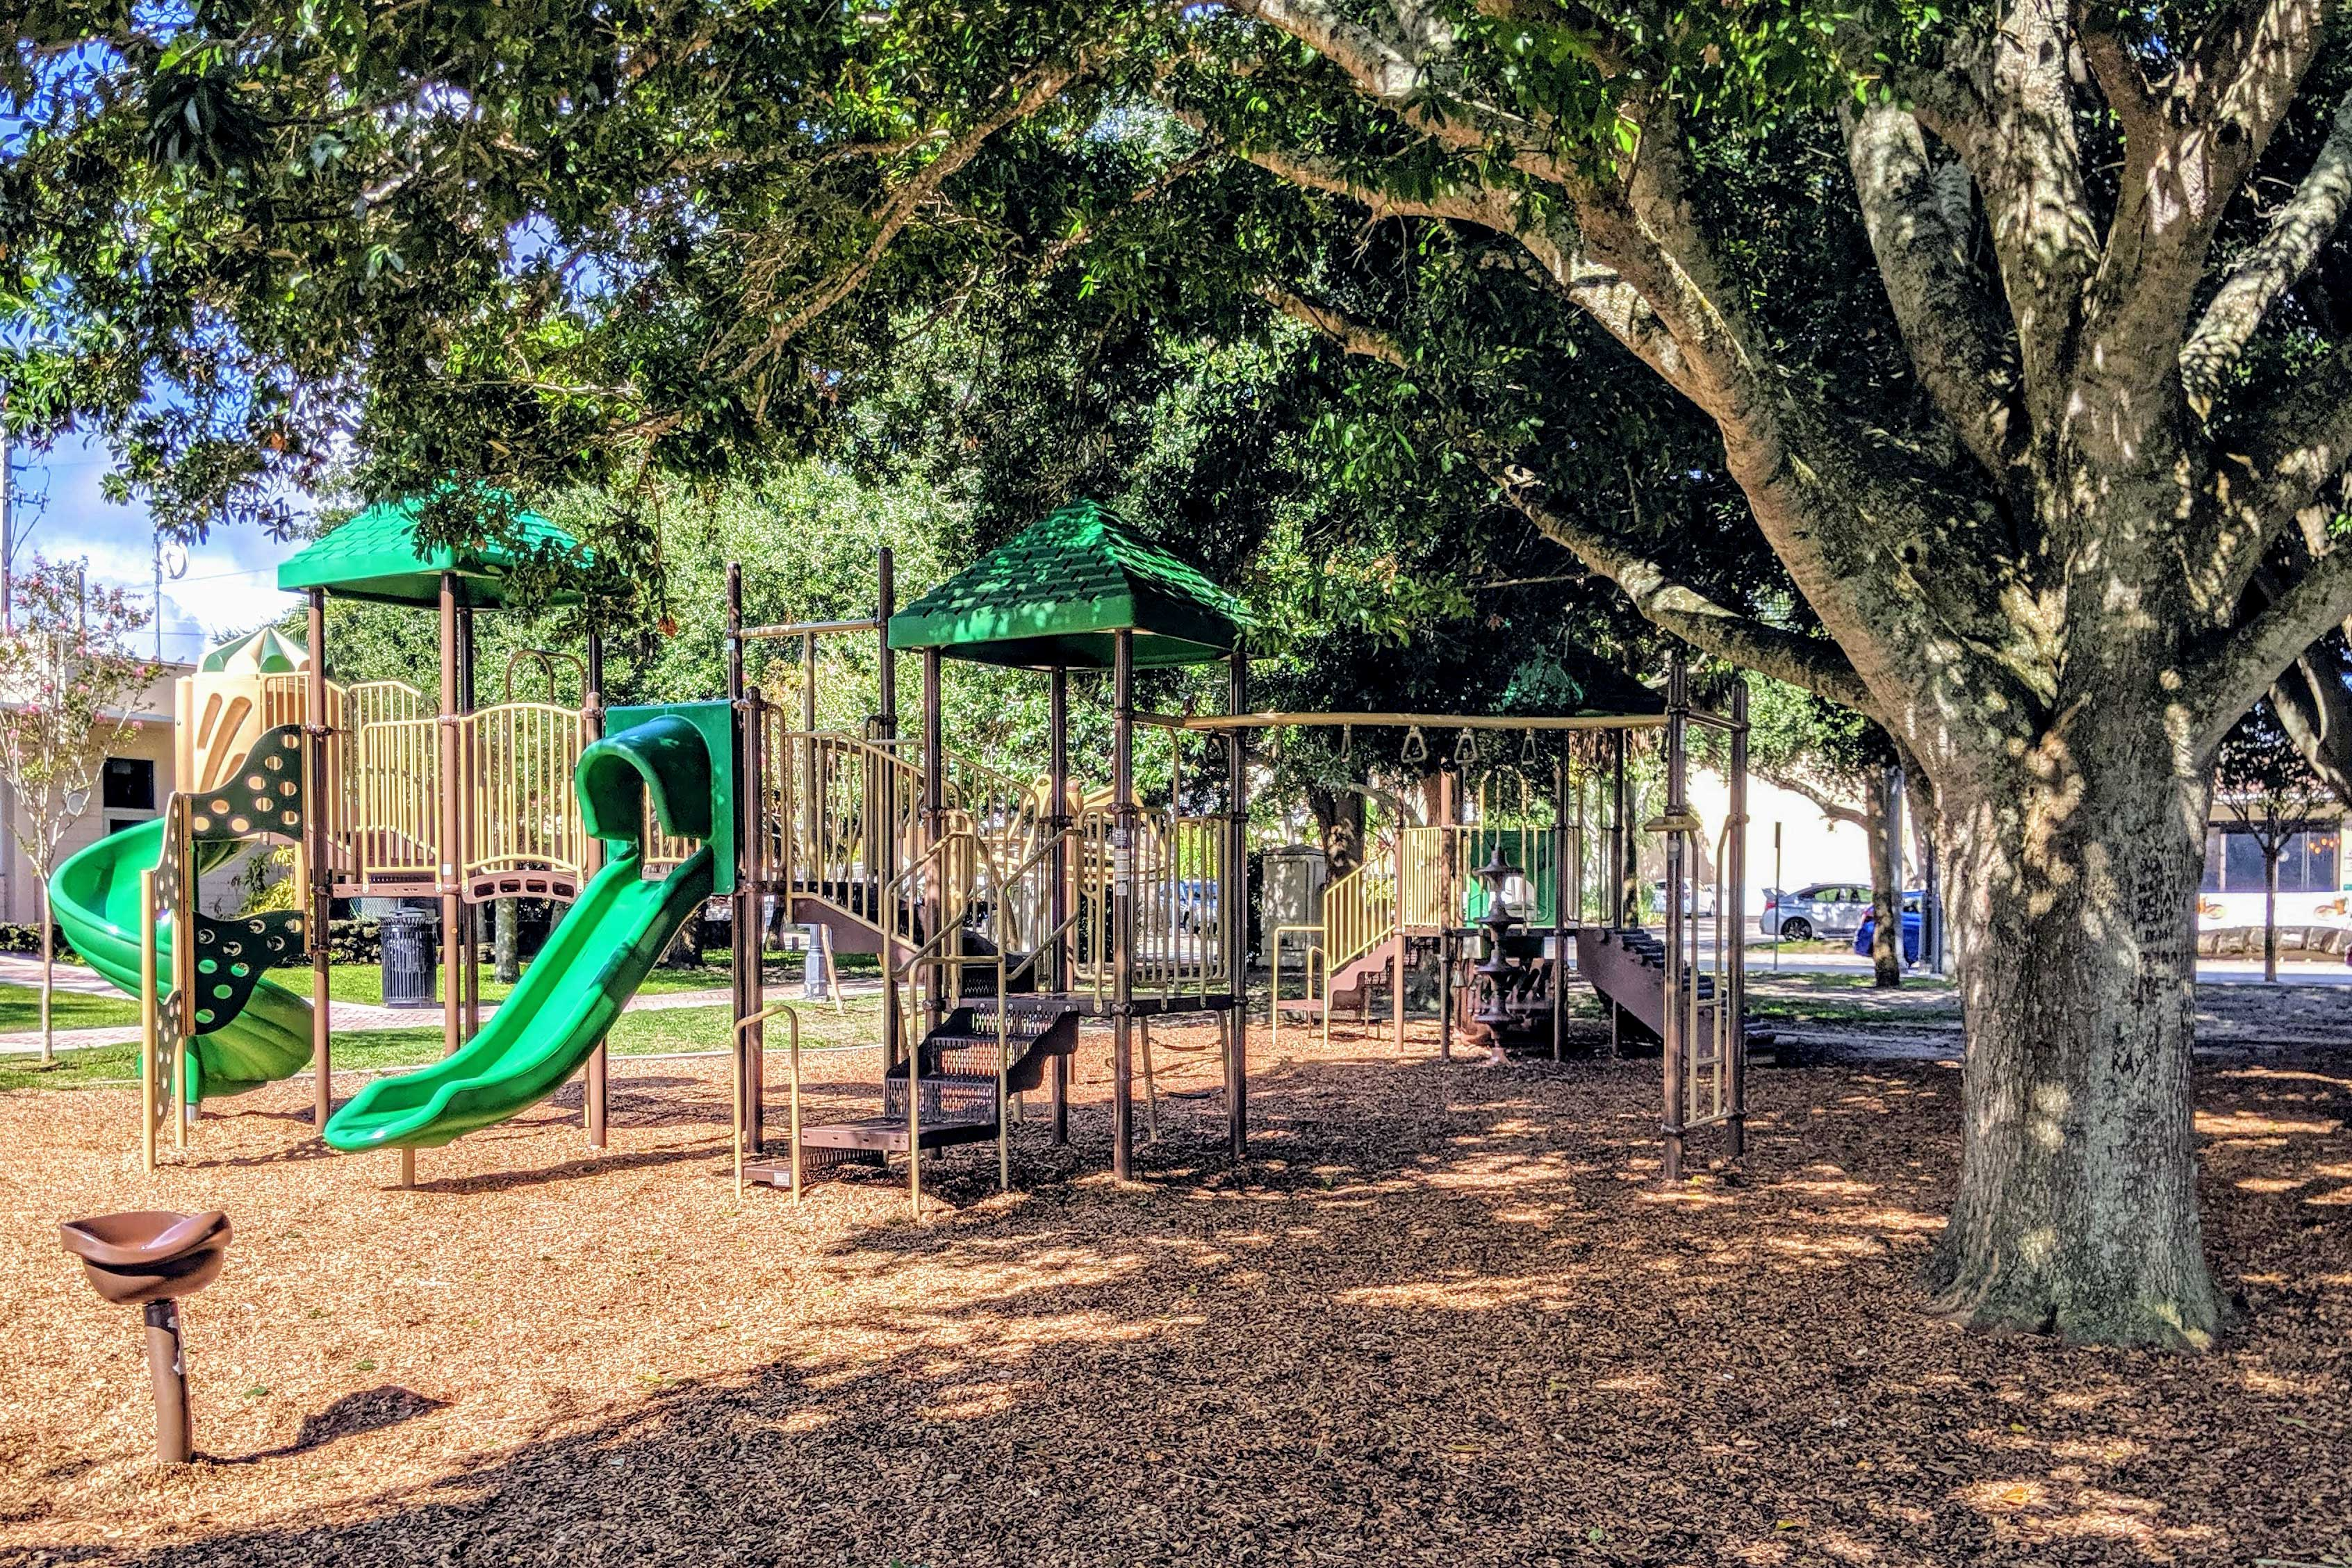 The kids will love the Taylor Park playground in Cocoa Village.